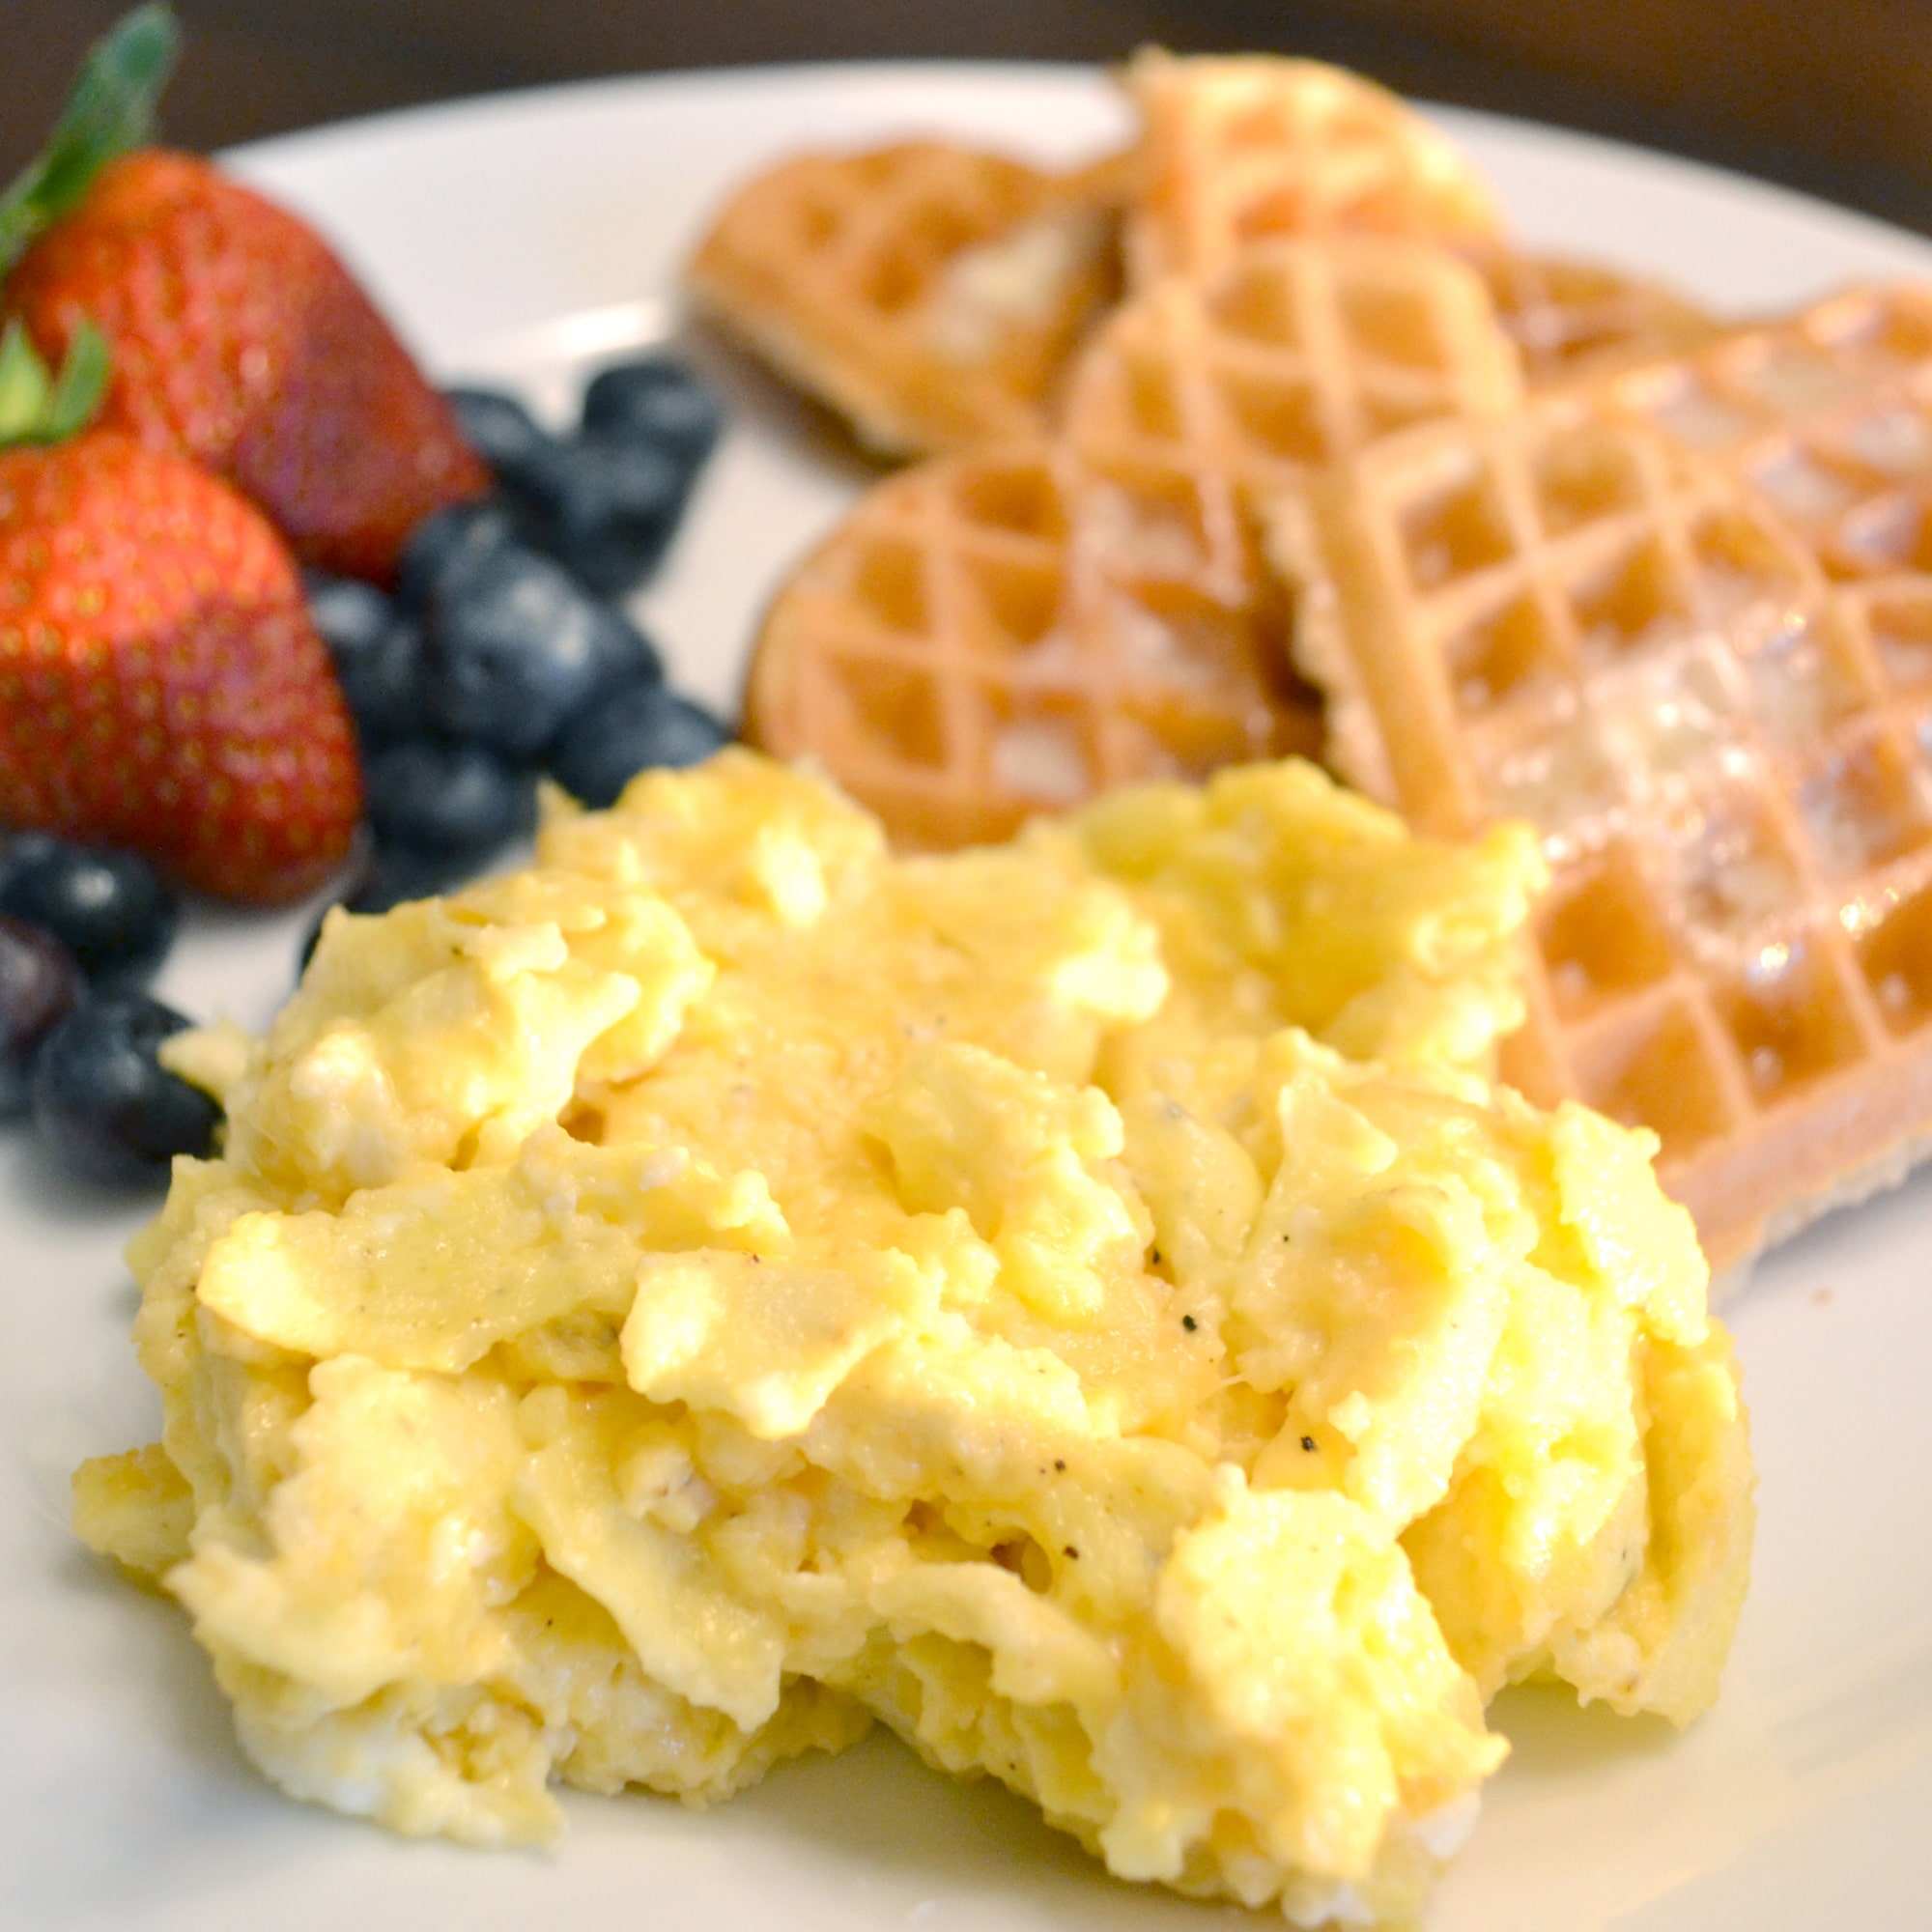 Want to know the secret is to making really perfectly scrambled eggs? Don't miss these step by step instructions for how to make the most delicious scrambled eggs you've ever tried.